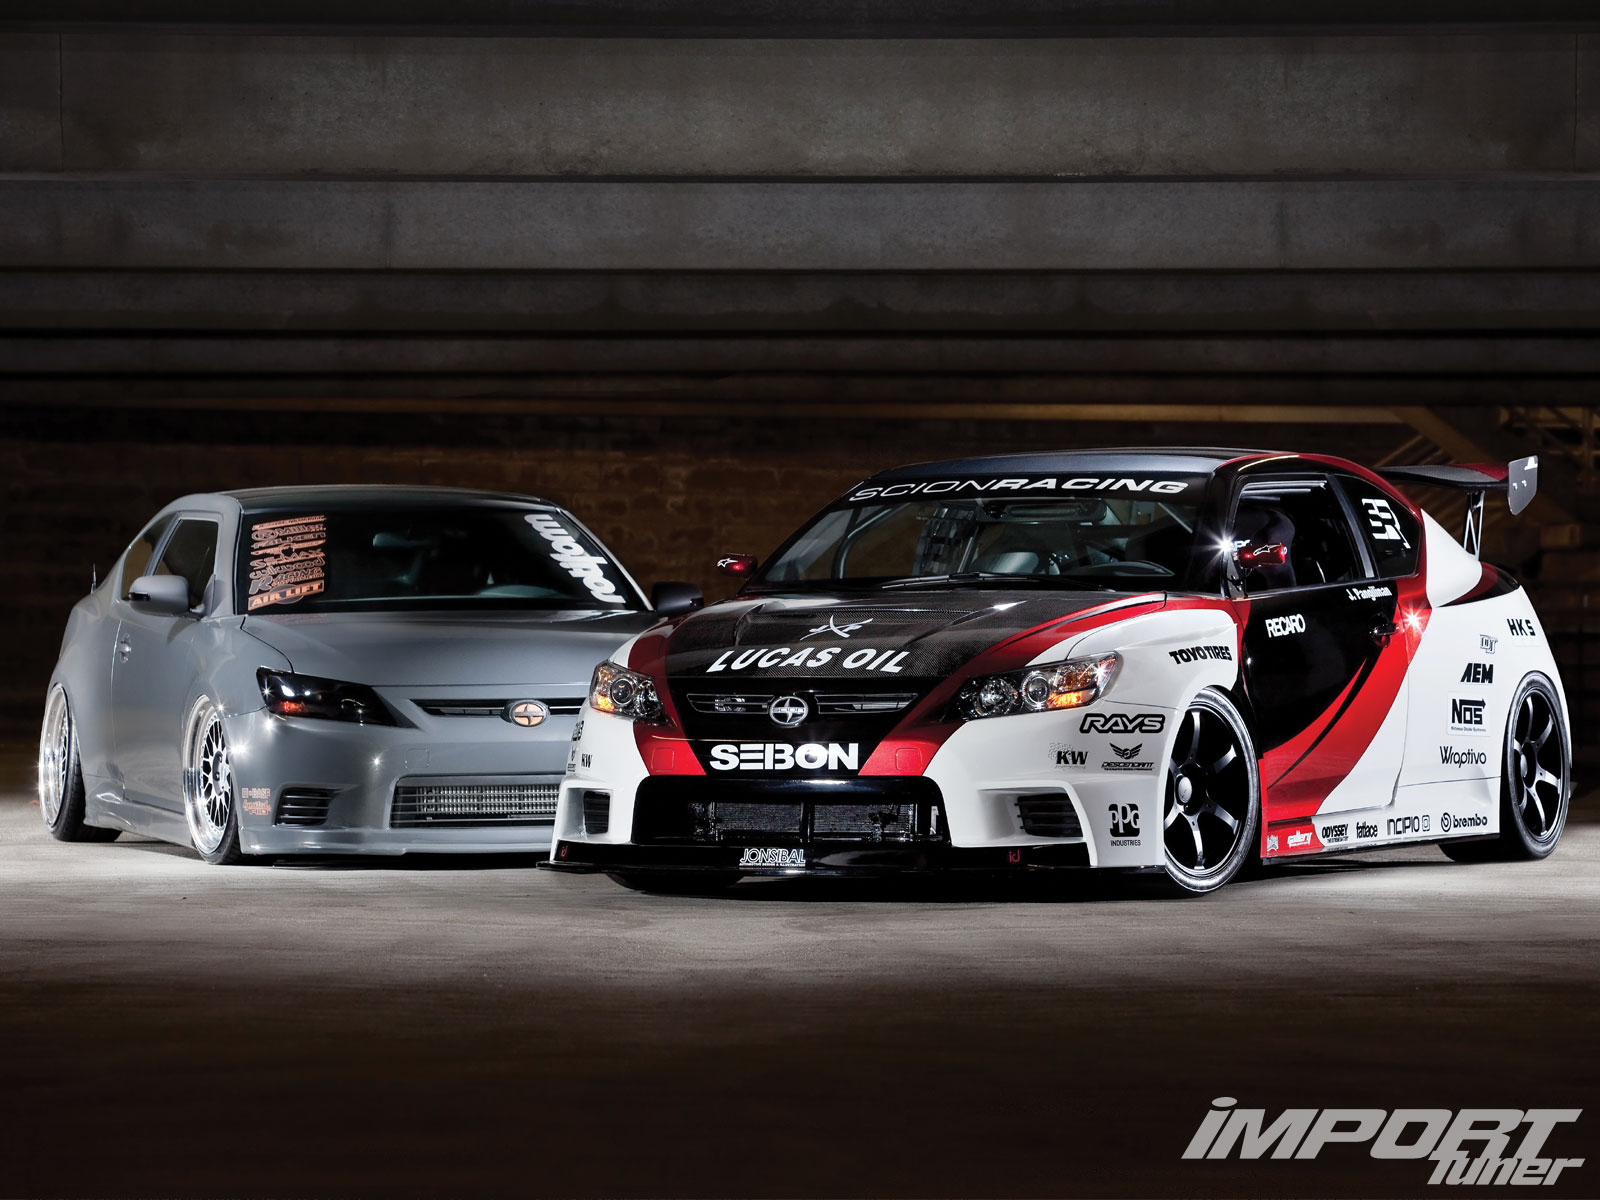 impp 1104 01 o 2011 scion tc paired together impp 1104 01 o 2011 scion tc paired together  [ 1600 x 1200 Pixel ]